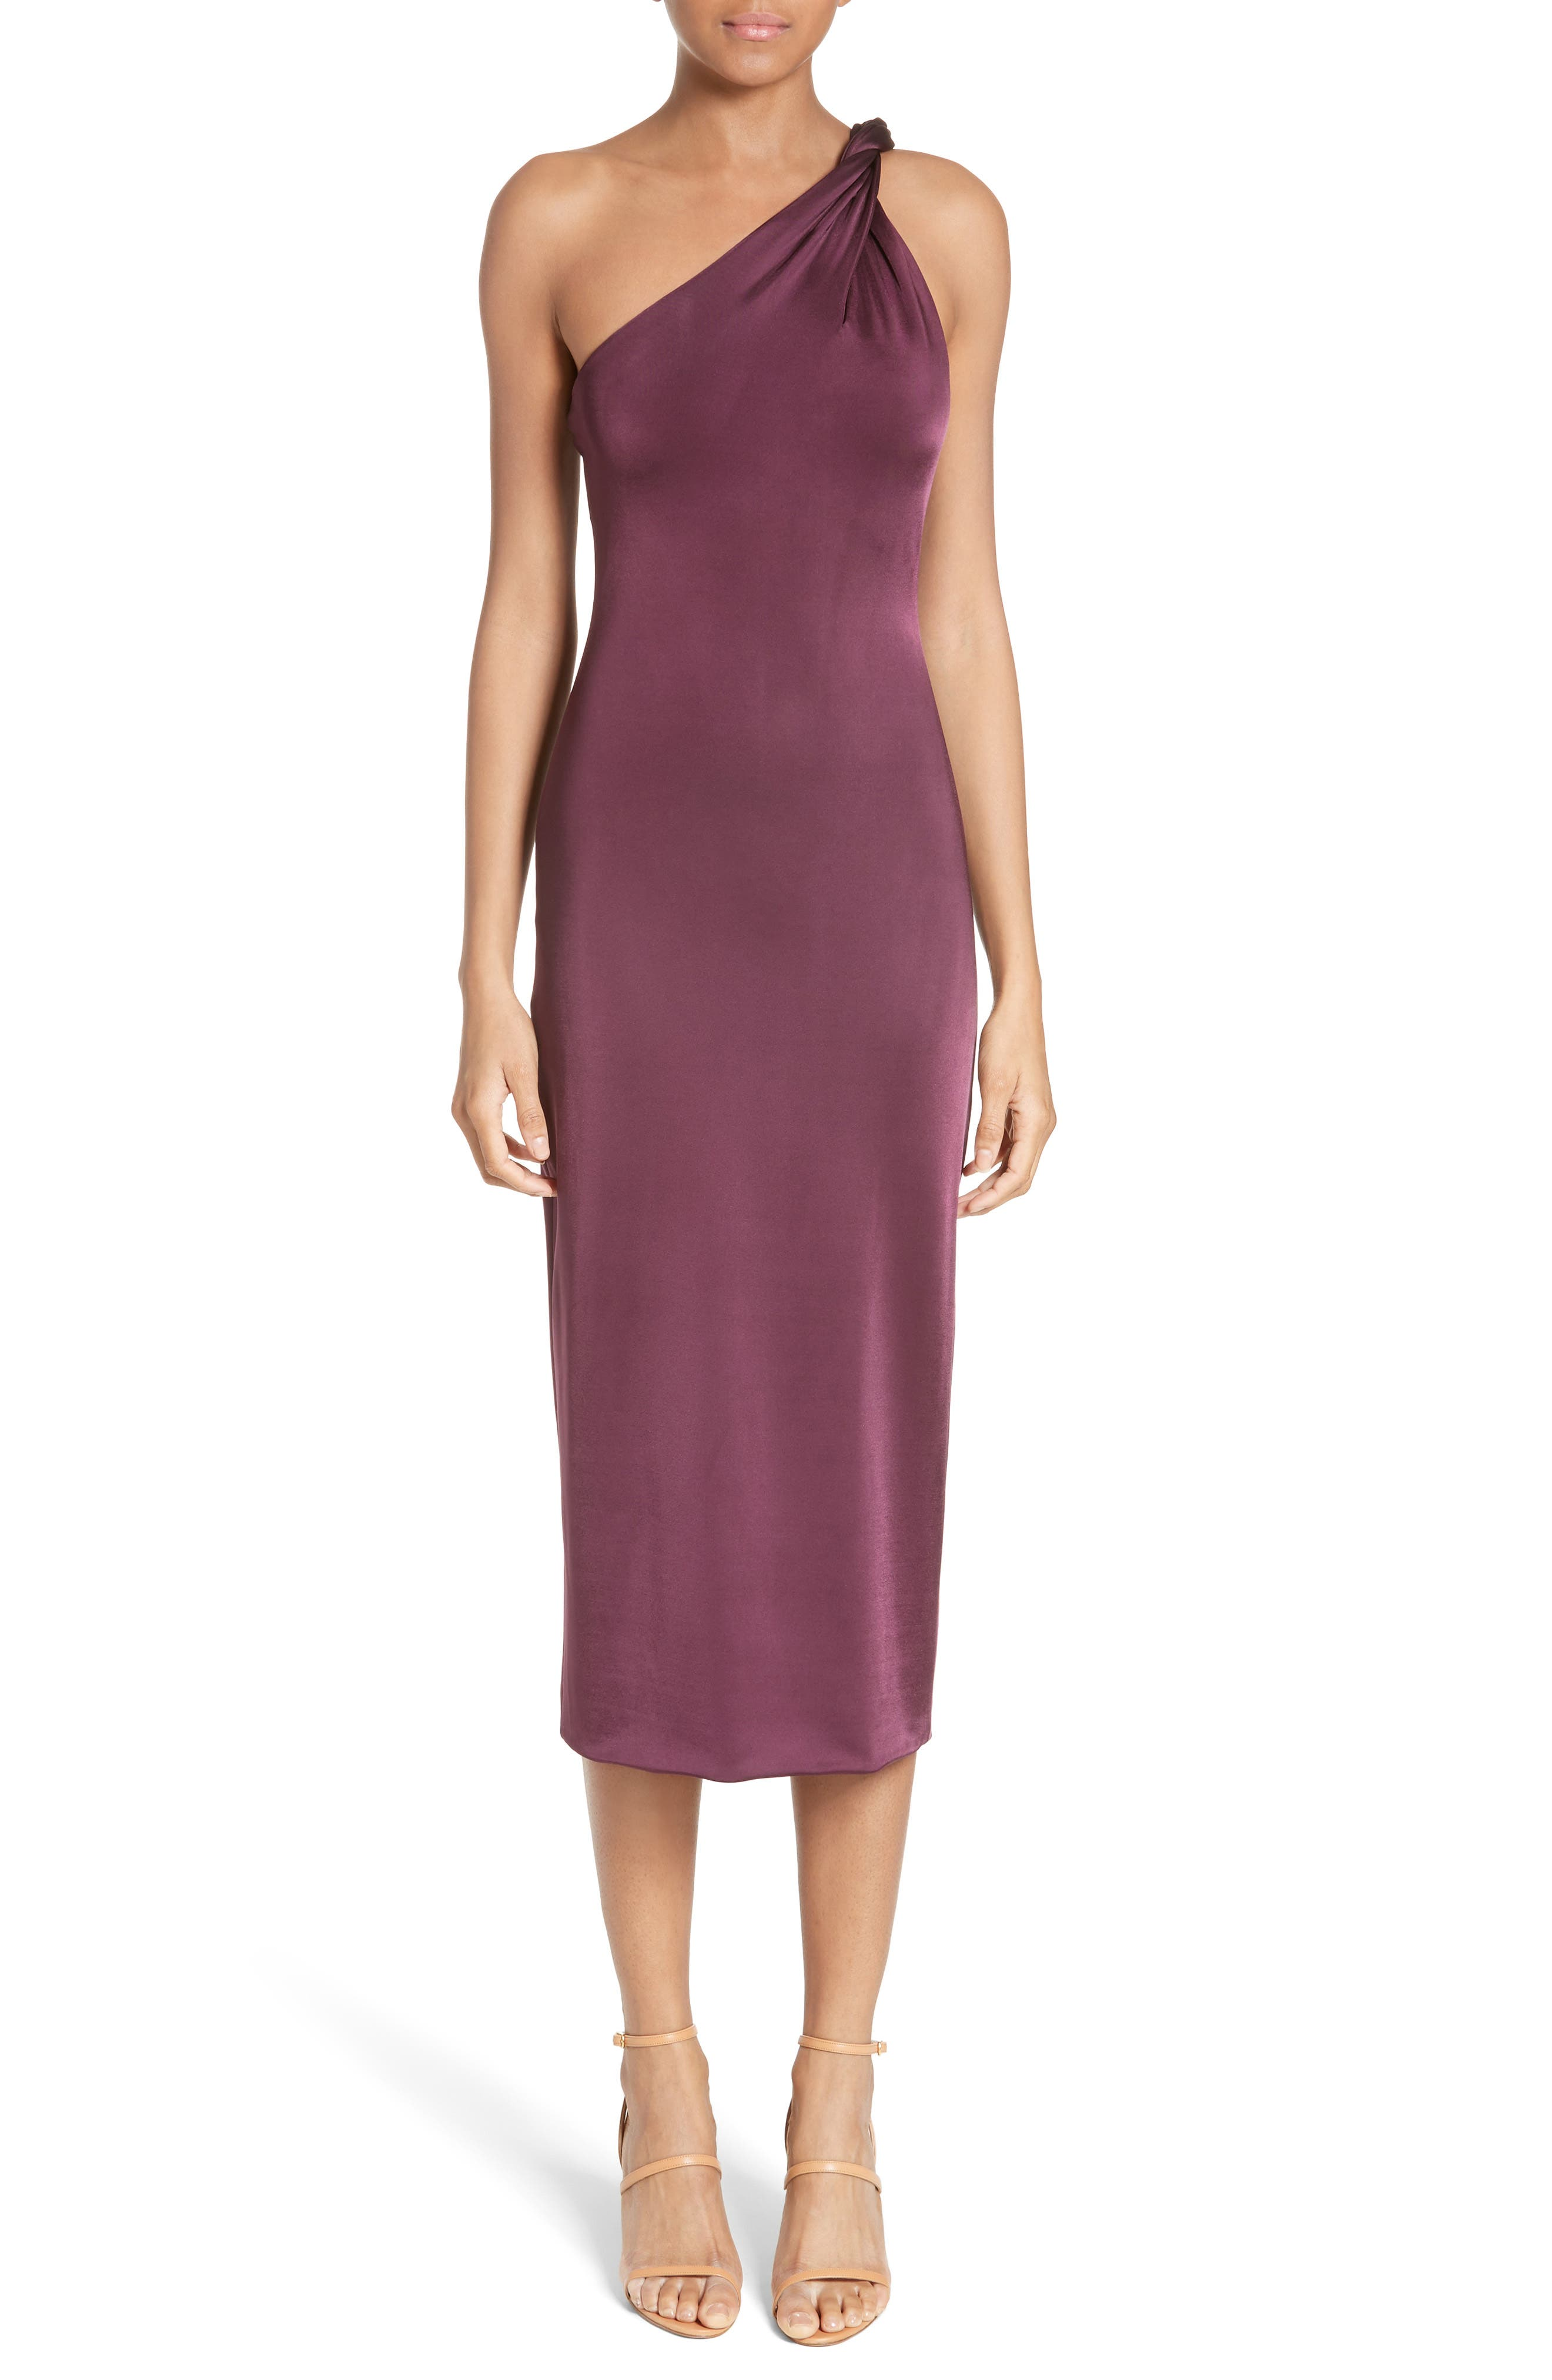 Cushnie et Ochs Twisted Jersey One-Shoulder Dress